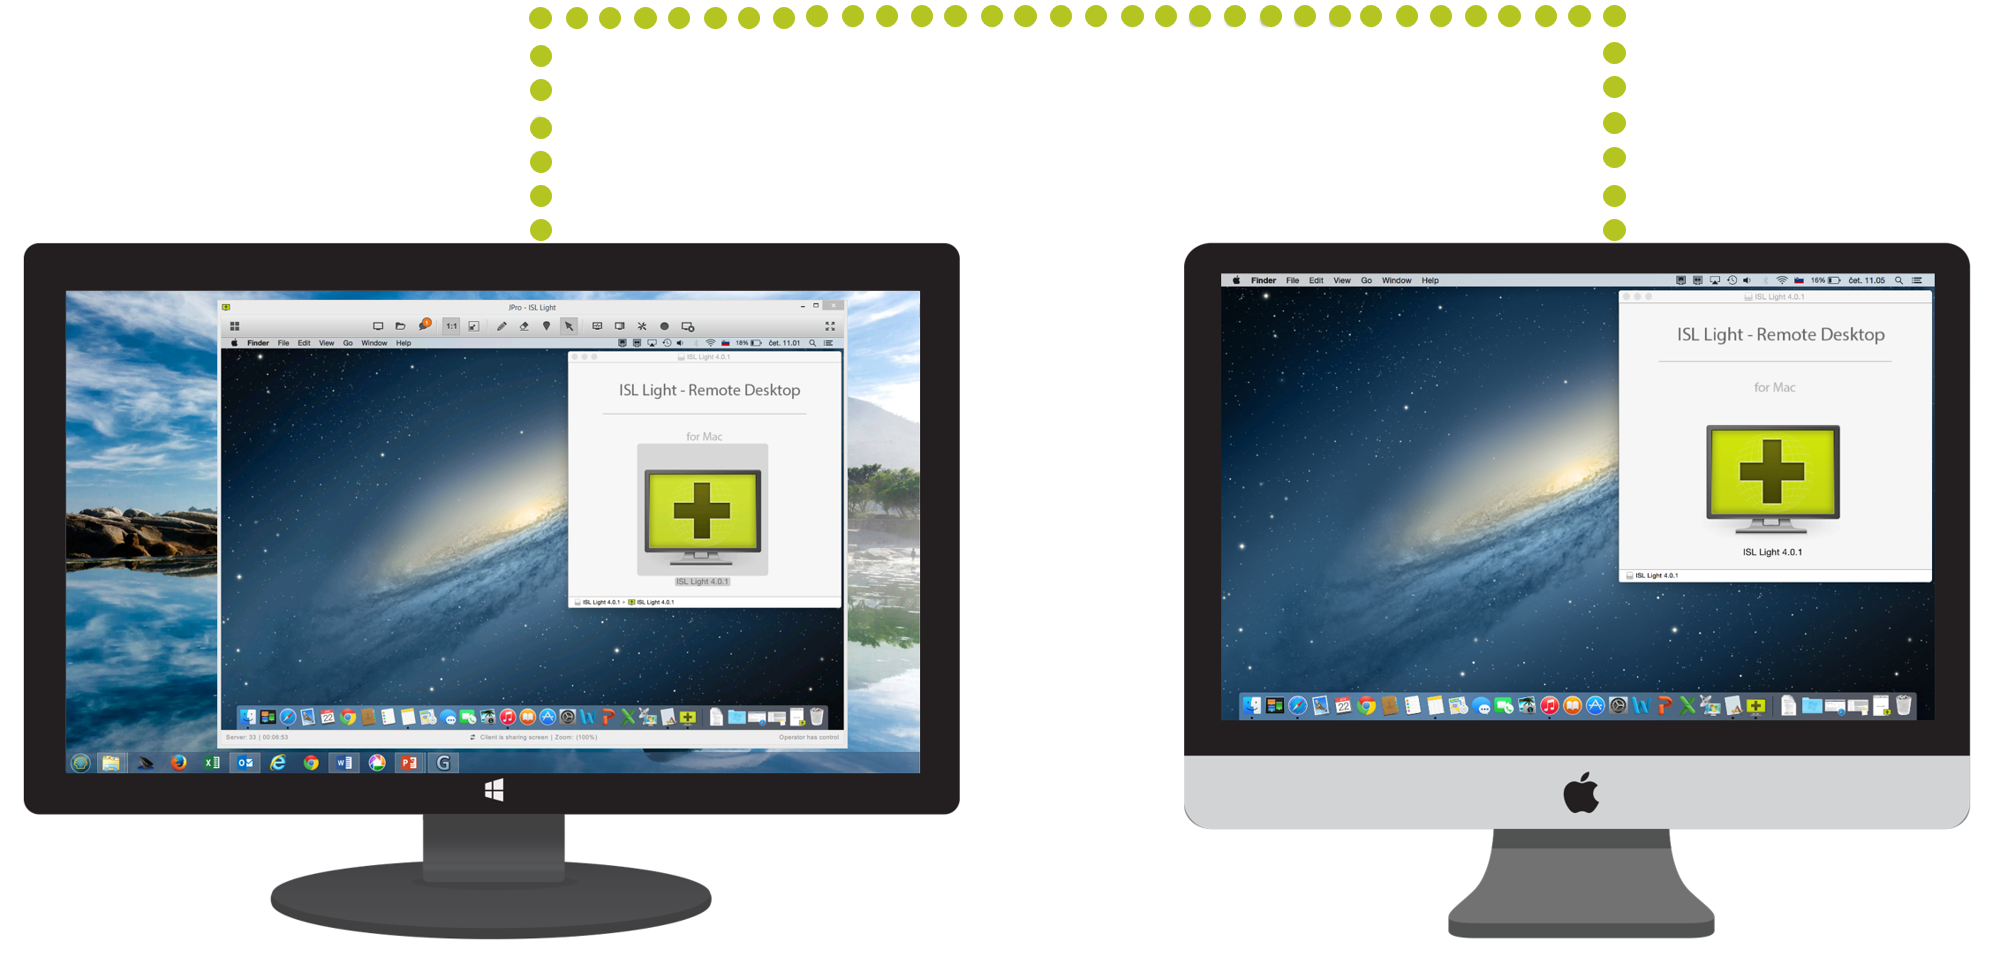 Desktop Sharing For Mac Gets A Full Makeover In The ISL